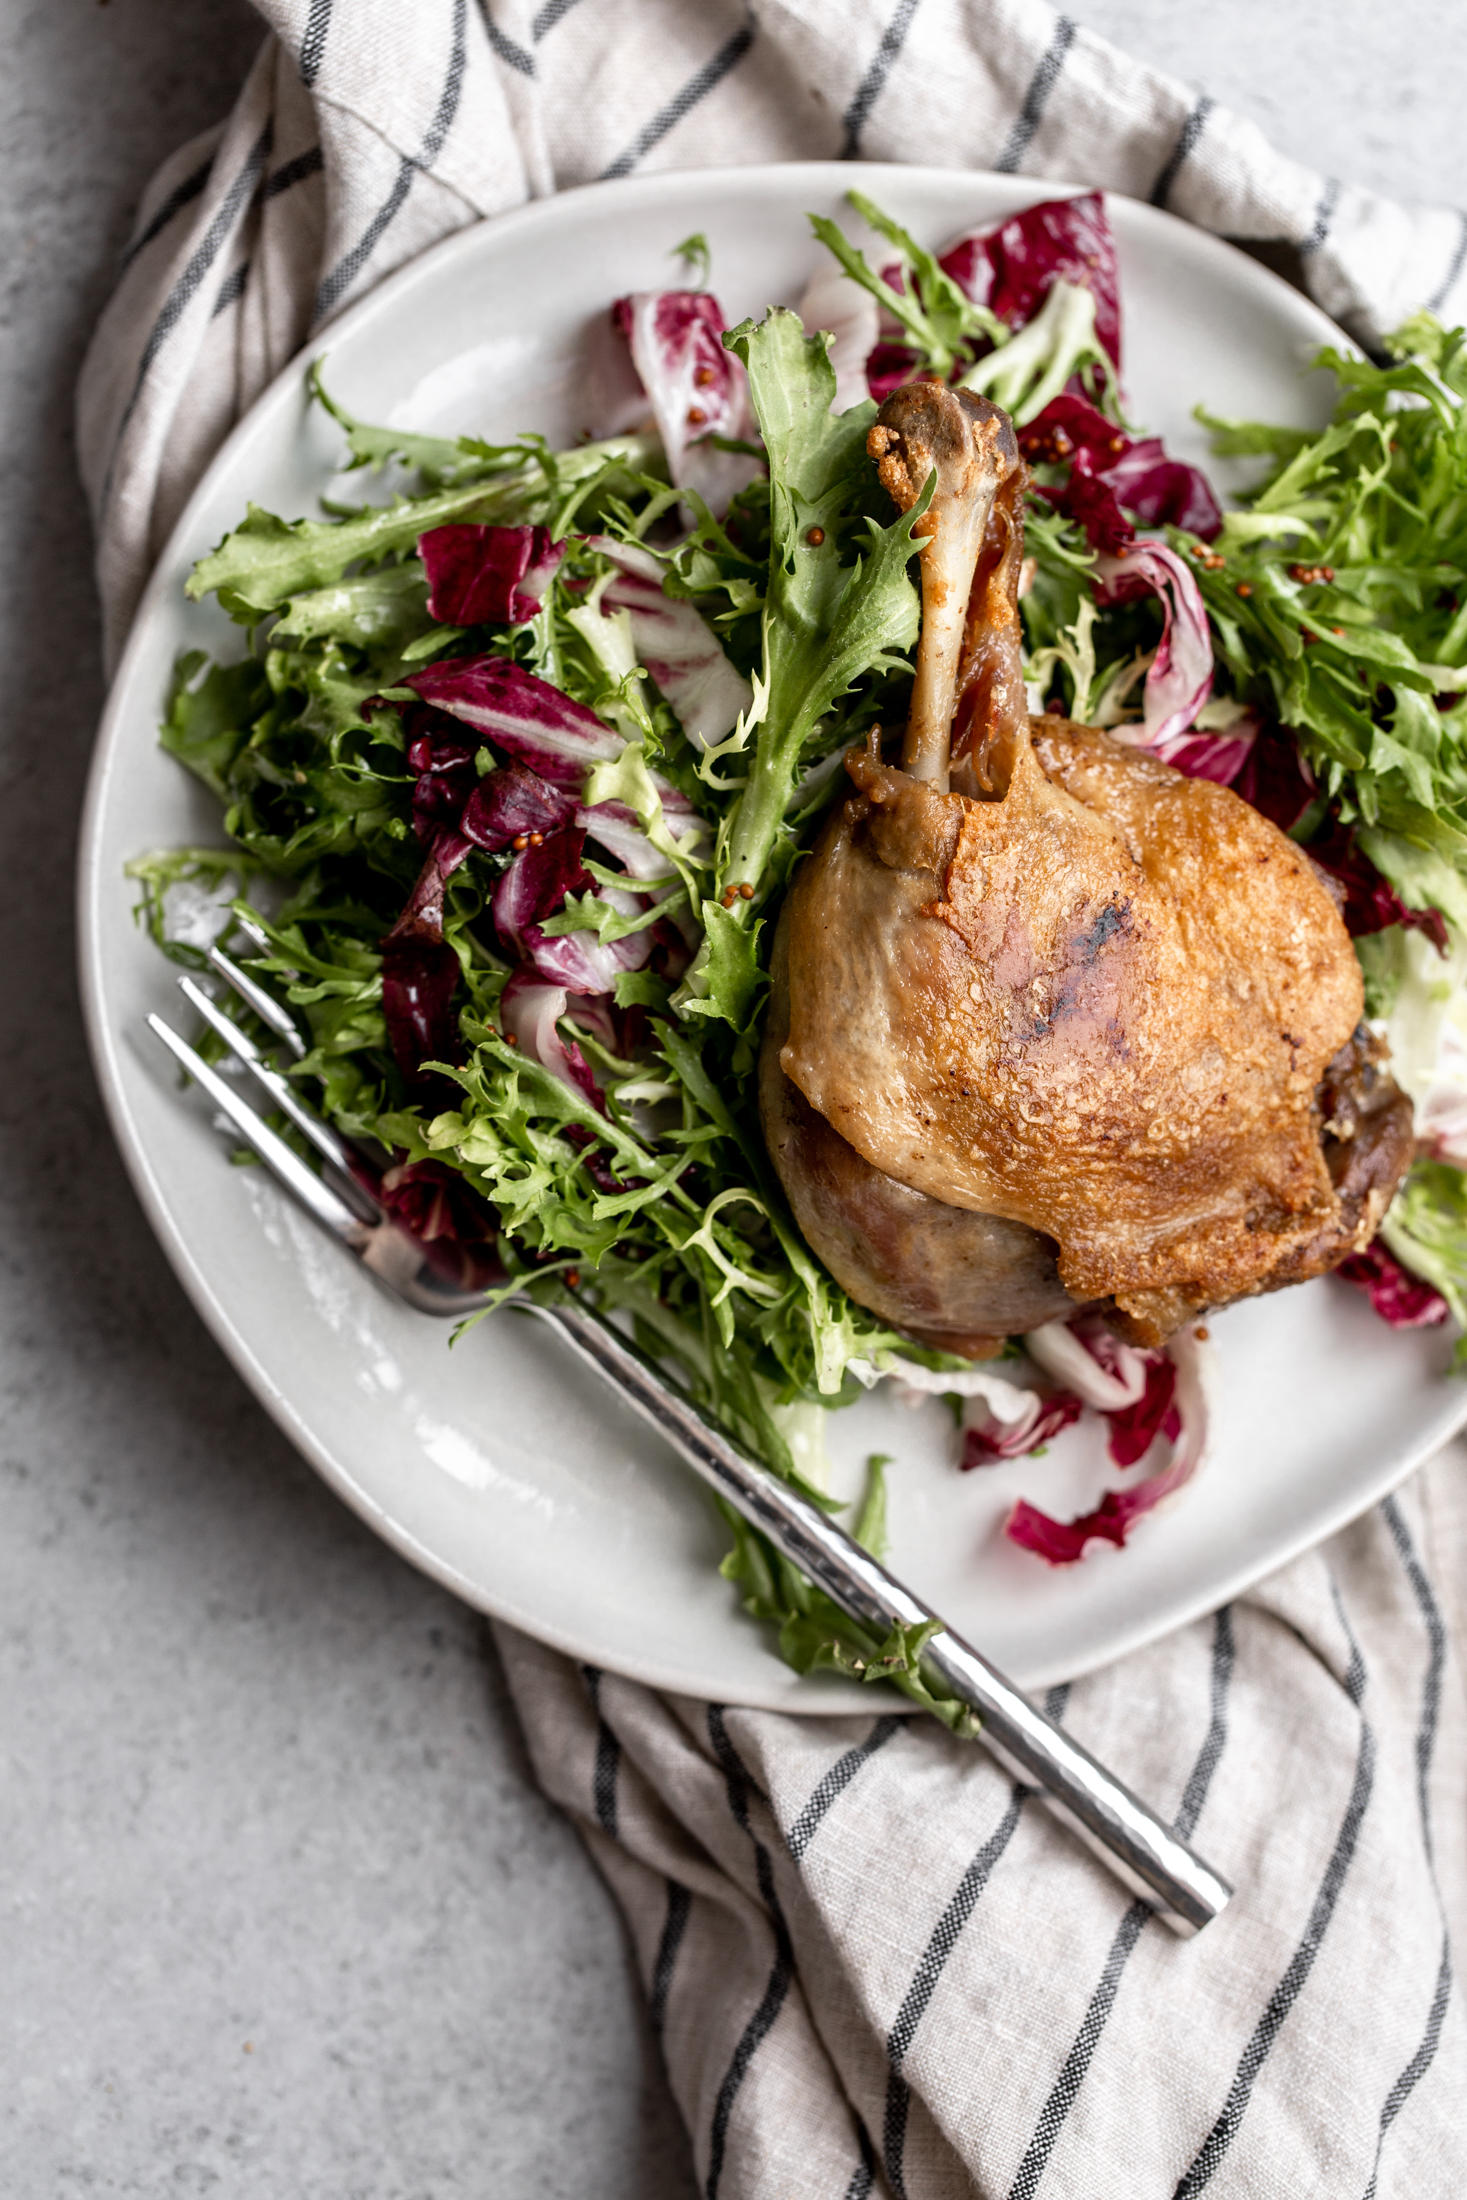 Confit duck legs recipe from cooking with cocktail rings